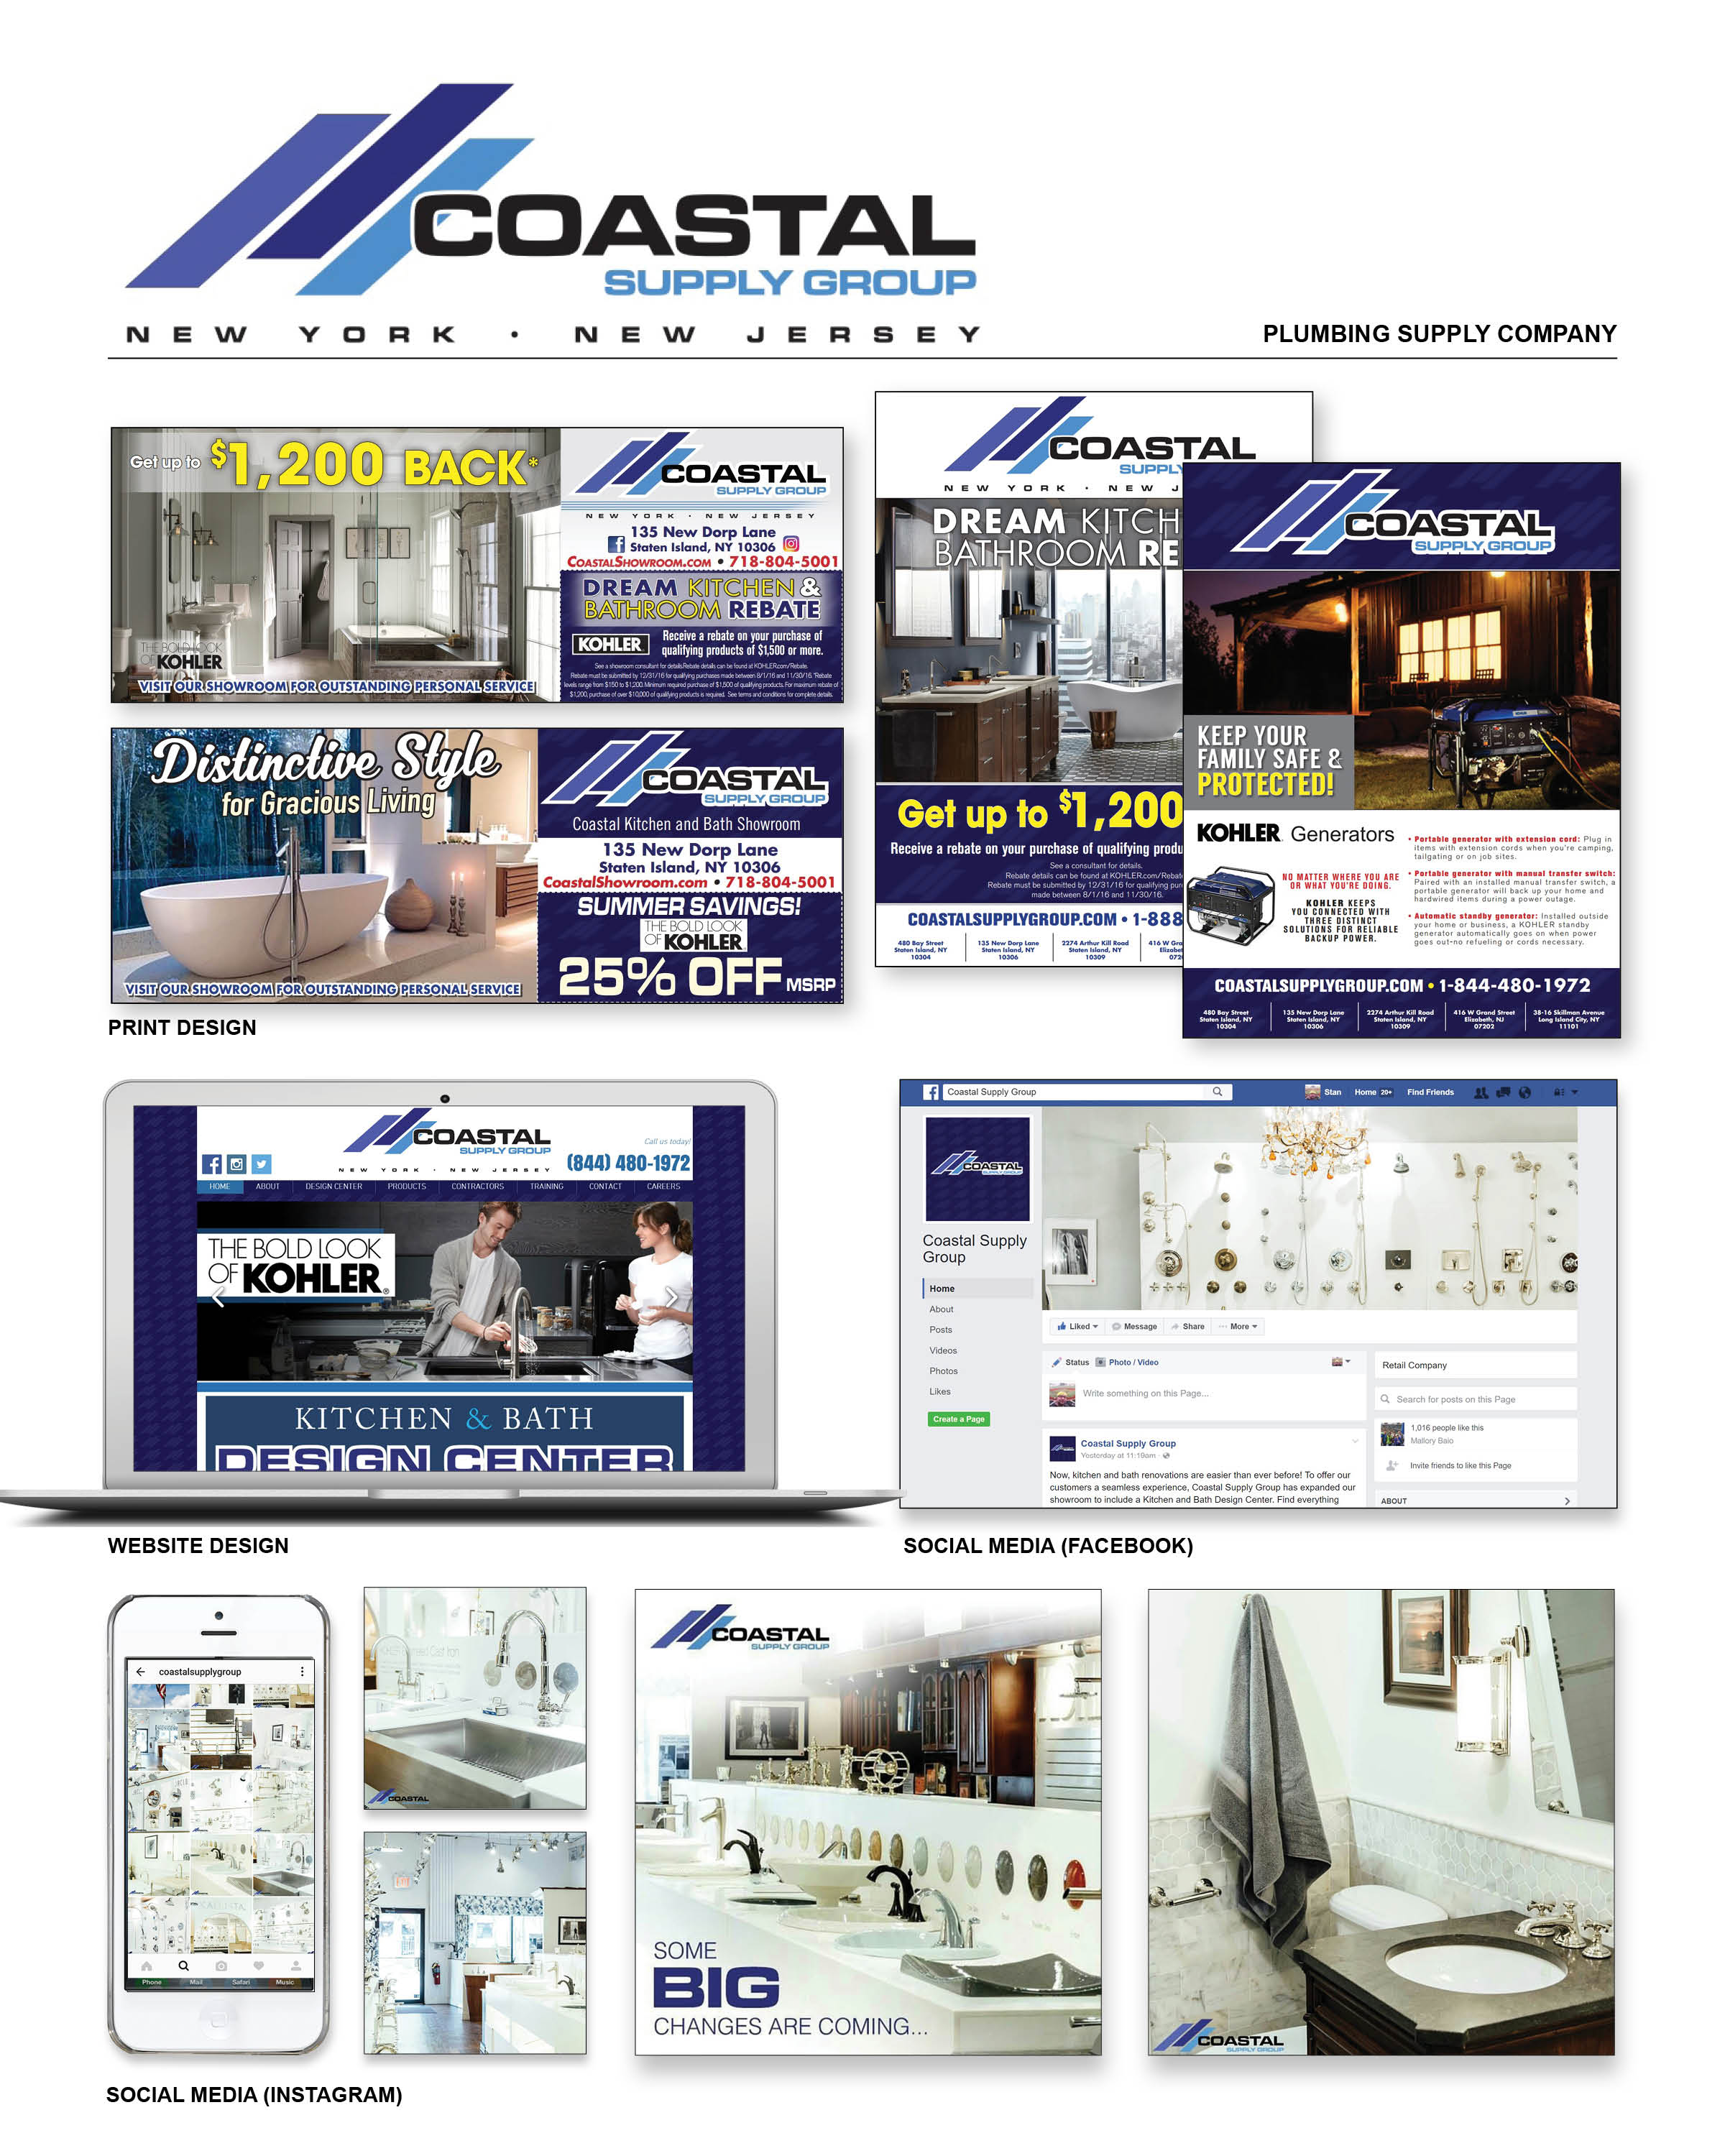 Coastal Supply Group